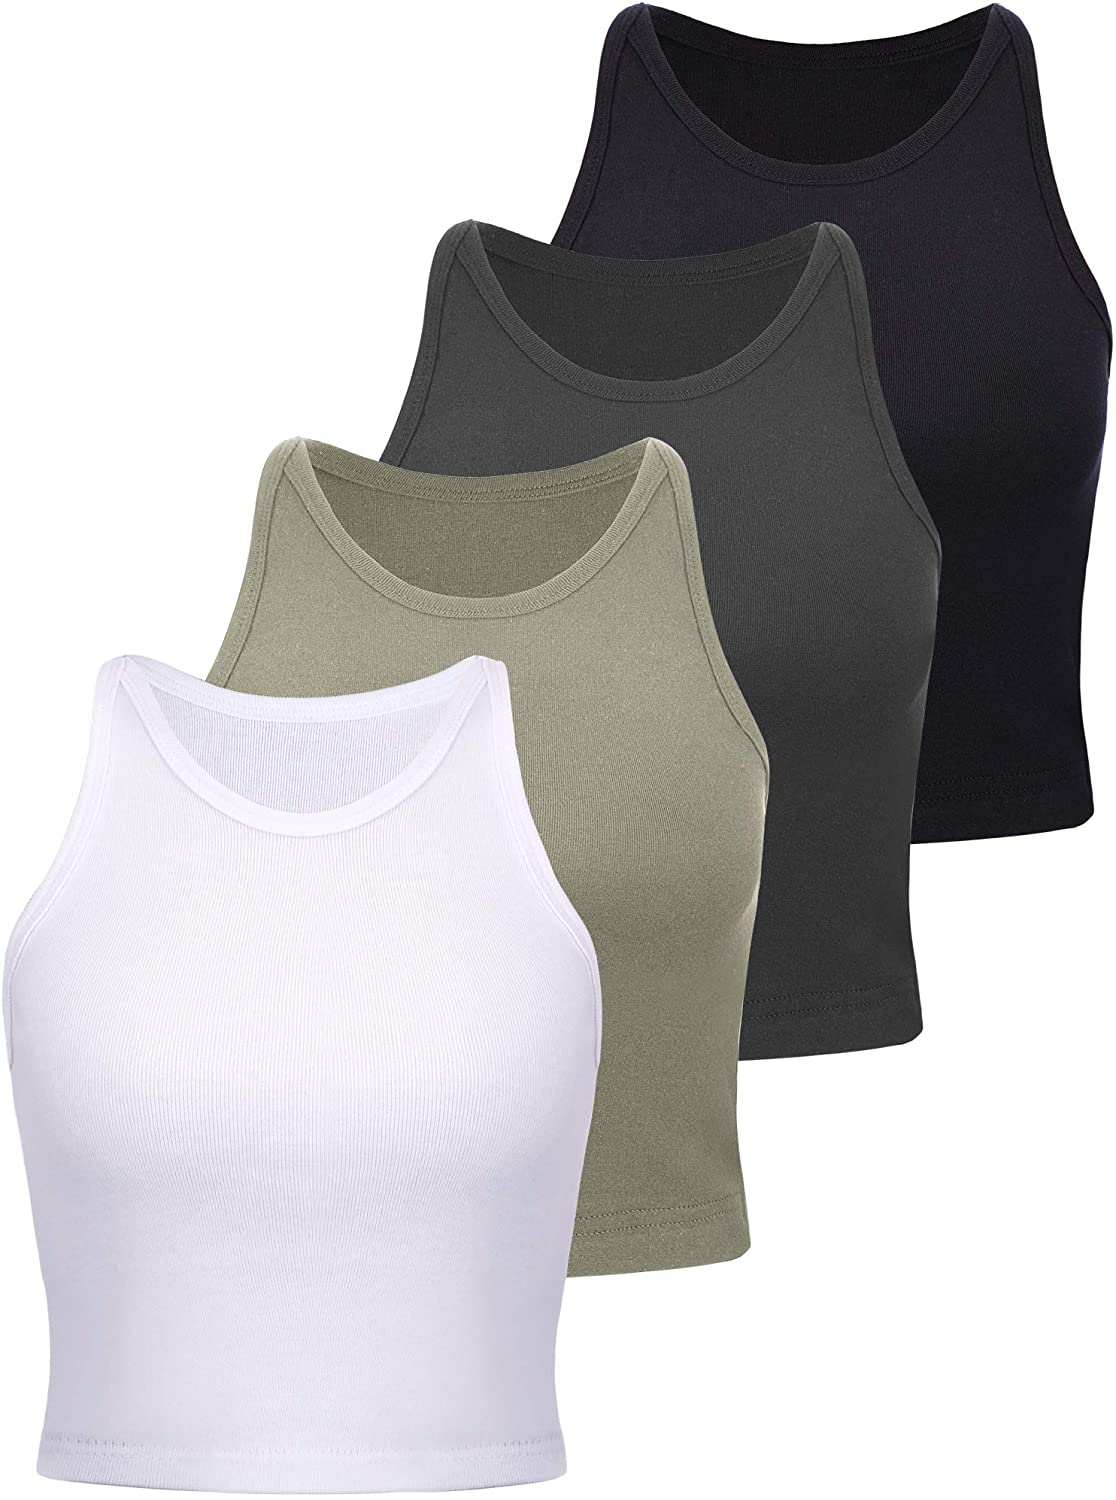 4 Pieces Basic Crop Tank Tops Women Sleeveless Racerback Crop Tops Cotton Sport Crop Tops for Lady Girls Daily Wearing